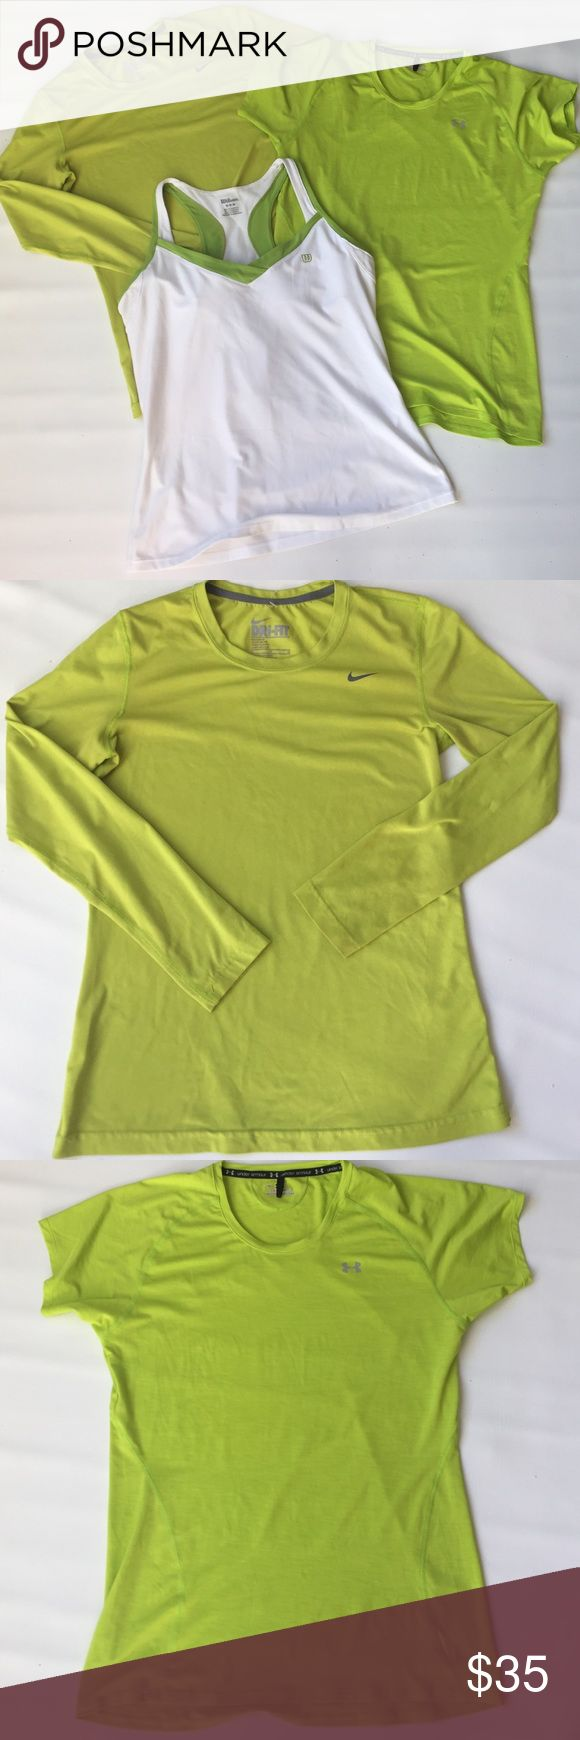 NWOT Under Armour M Wilson M Nike M Women's lot 3 items lot: NWOT Under Armour green short sleeve top, NWOT Wilson build in bra tank top white and pre loved Nike dry fit long sleeve top in perfect condition Nike Tops